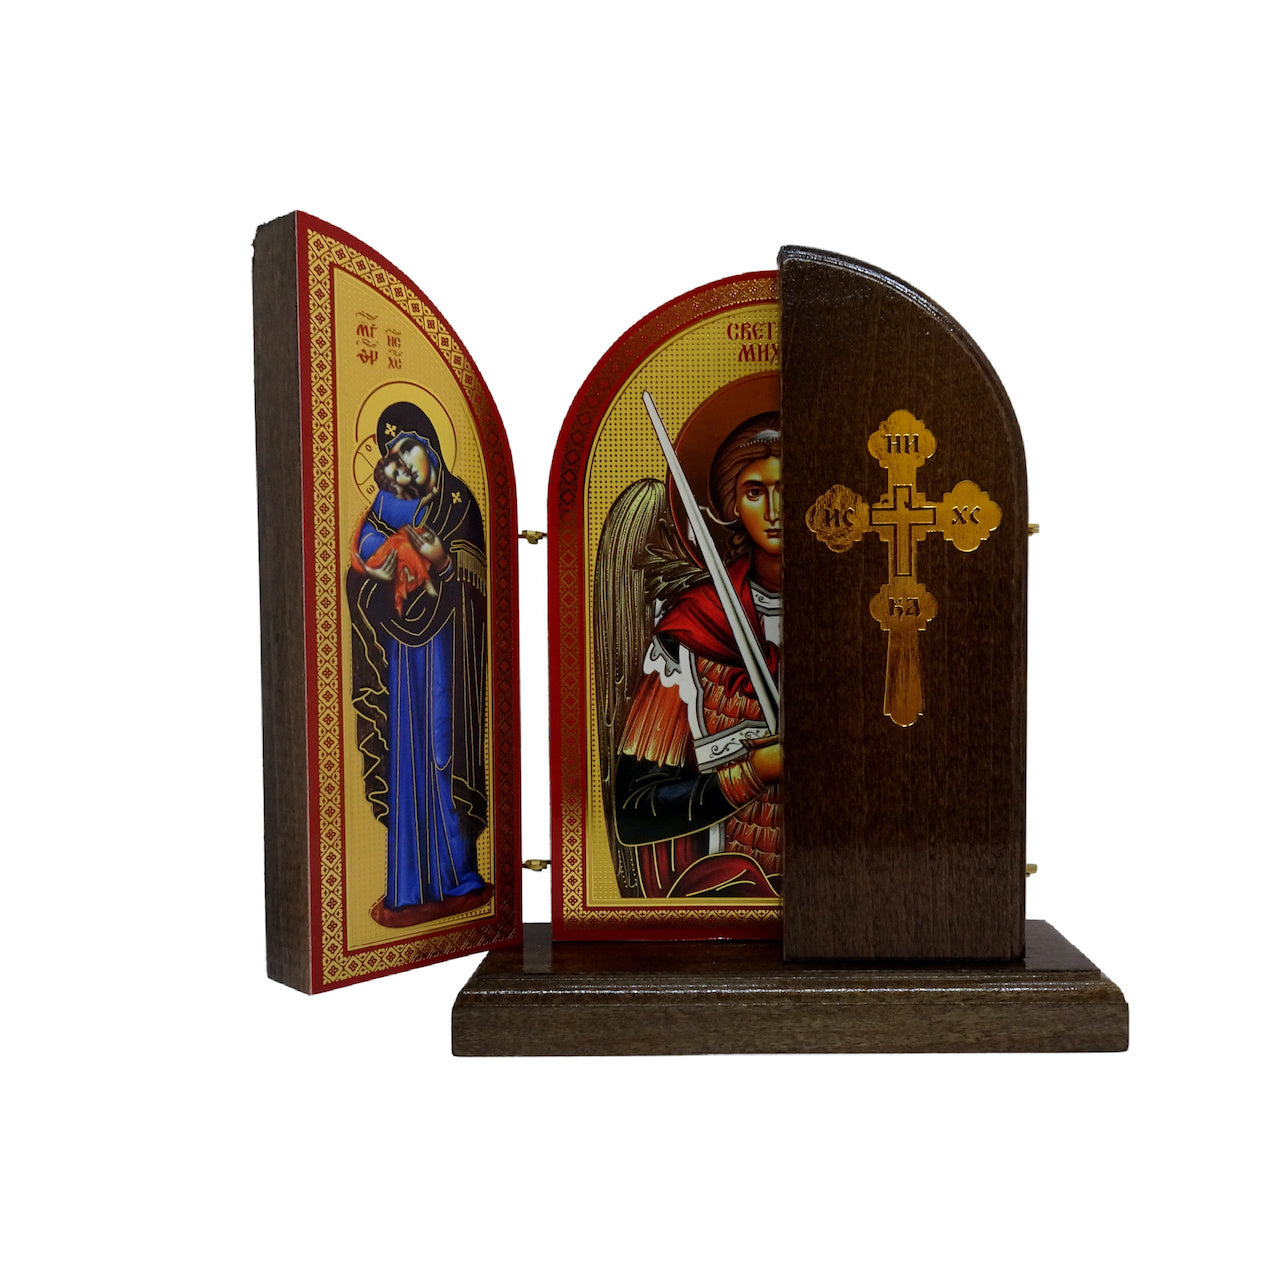 Saint Archangel Michael Orthodox Wooden Triptych with the Orthodox Byzantine Icons of Jesus Christ and Holy Theotokos